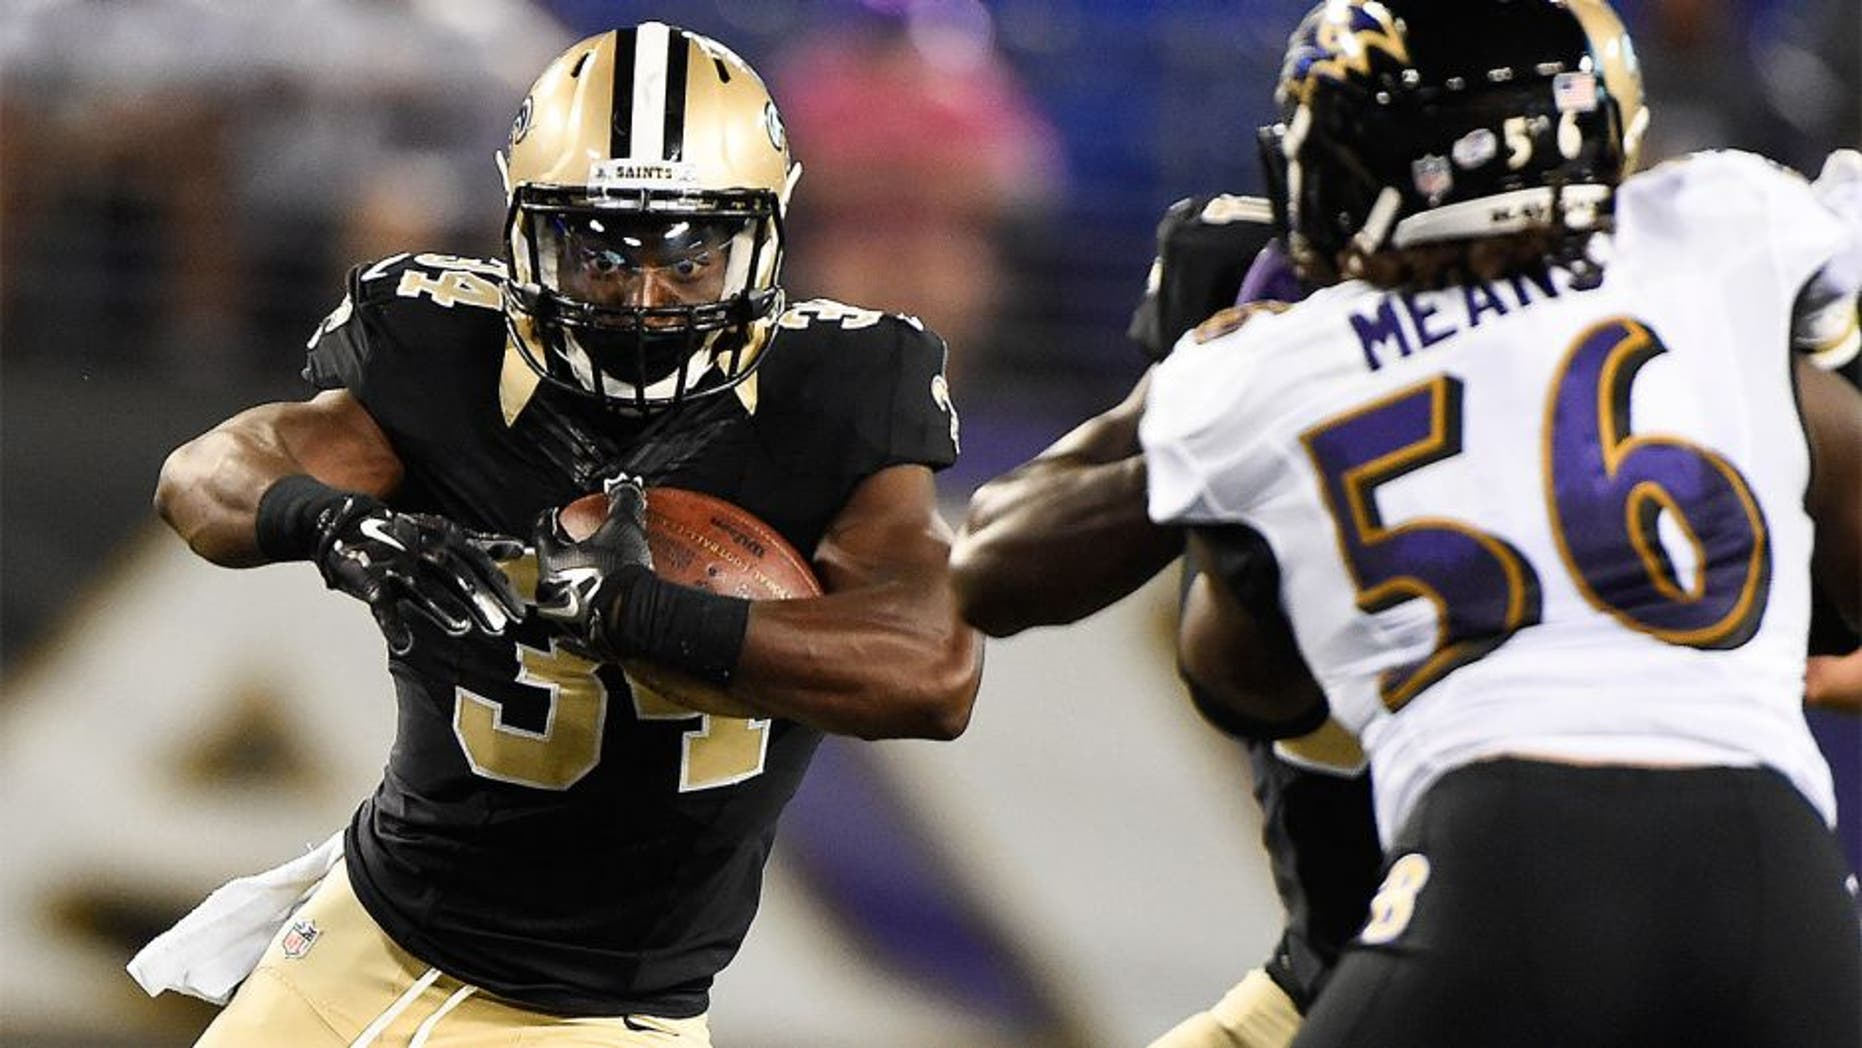 Aug 13, 2015; Baltimore, MD, USA; New Orleans Saints running back Tim Hightower (34) runs with the ball during the third quarter against the Baltimore Ravens in a preseason NFL football game at M&T Bank Stadium. Mandatory Credit: Tommy Gilligan-USA TODAY Sports